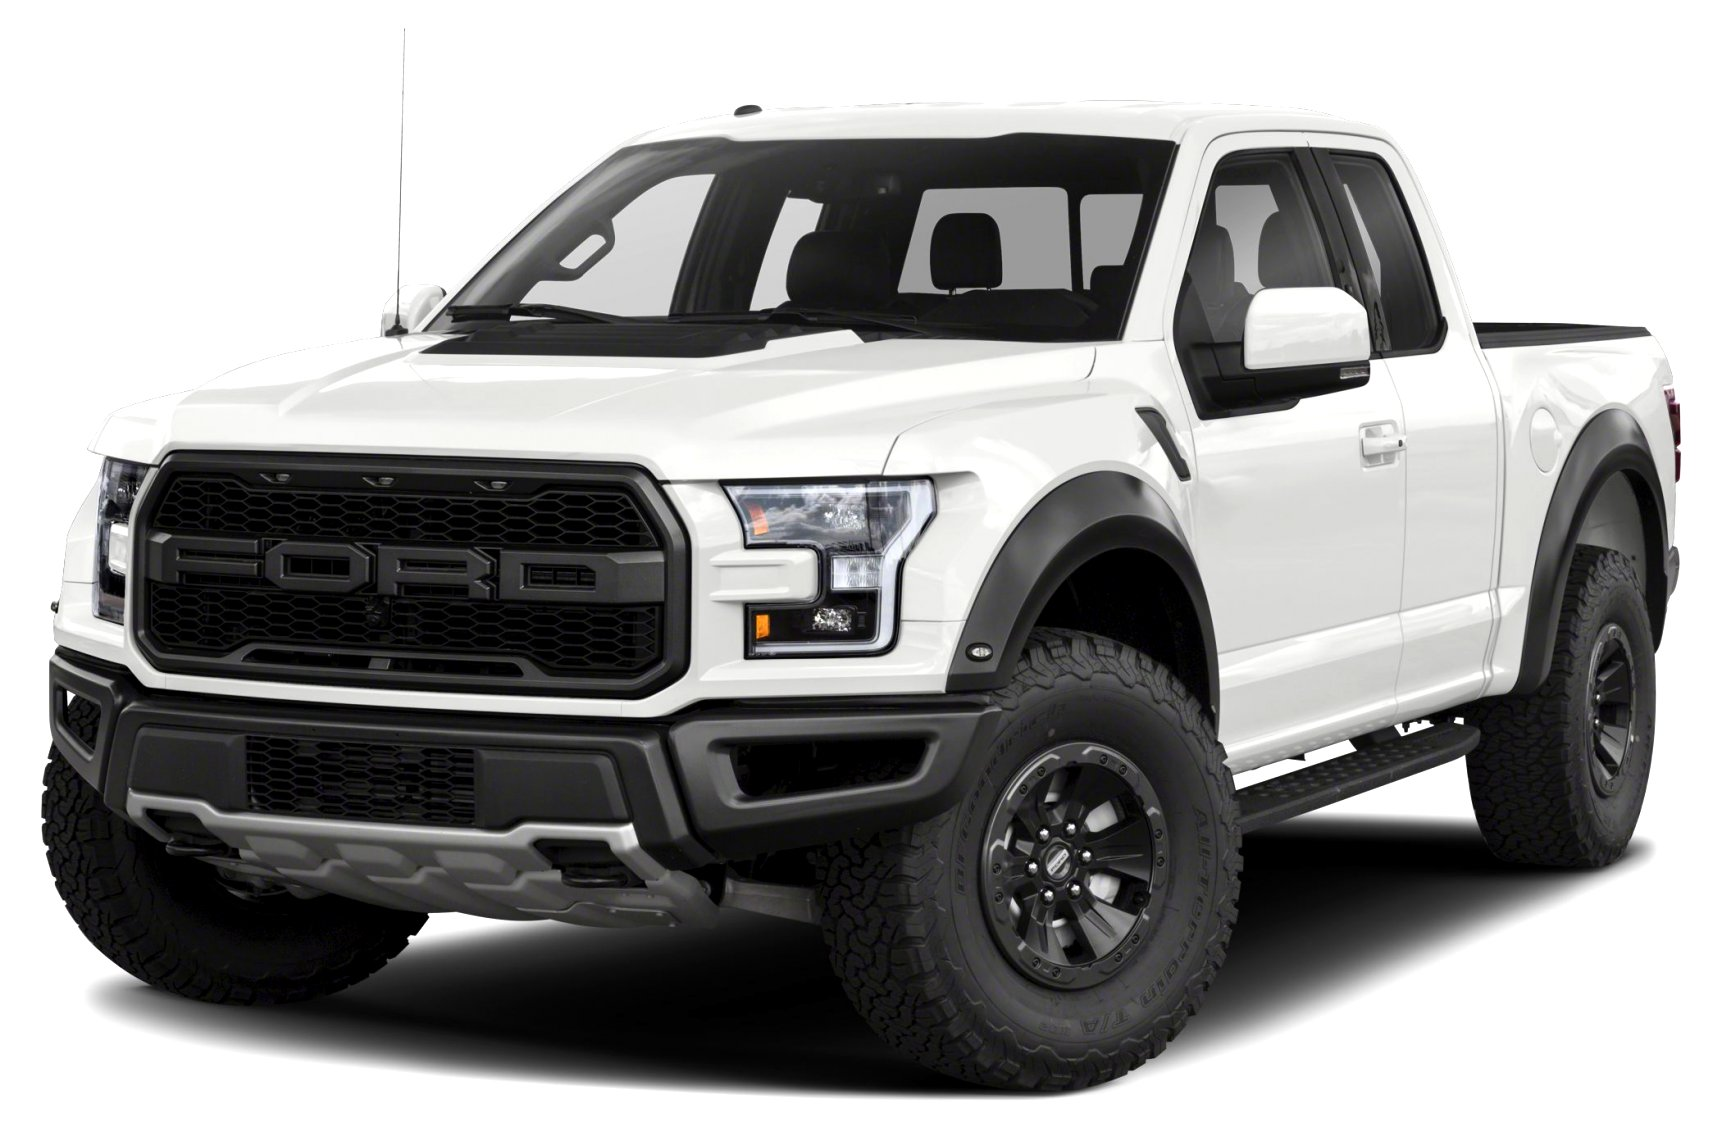 2020 ford raptor price Ratings